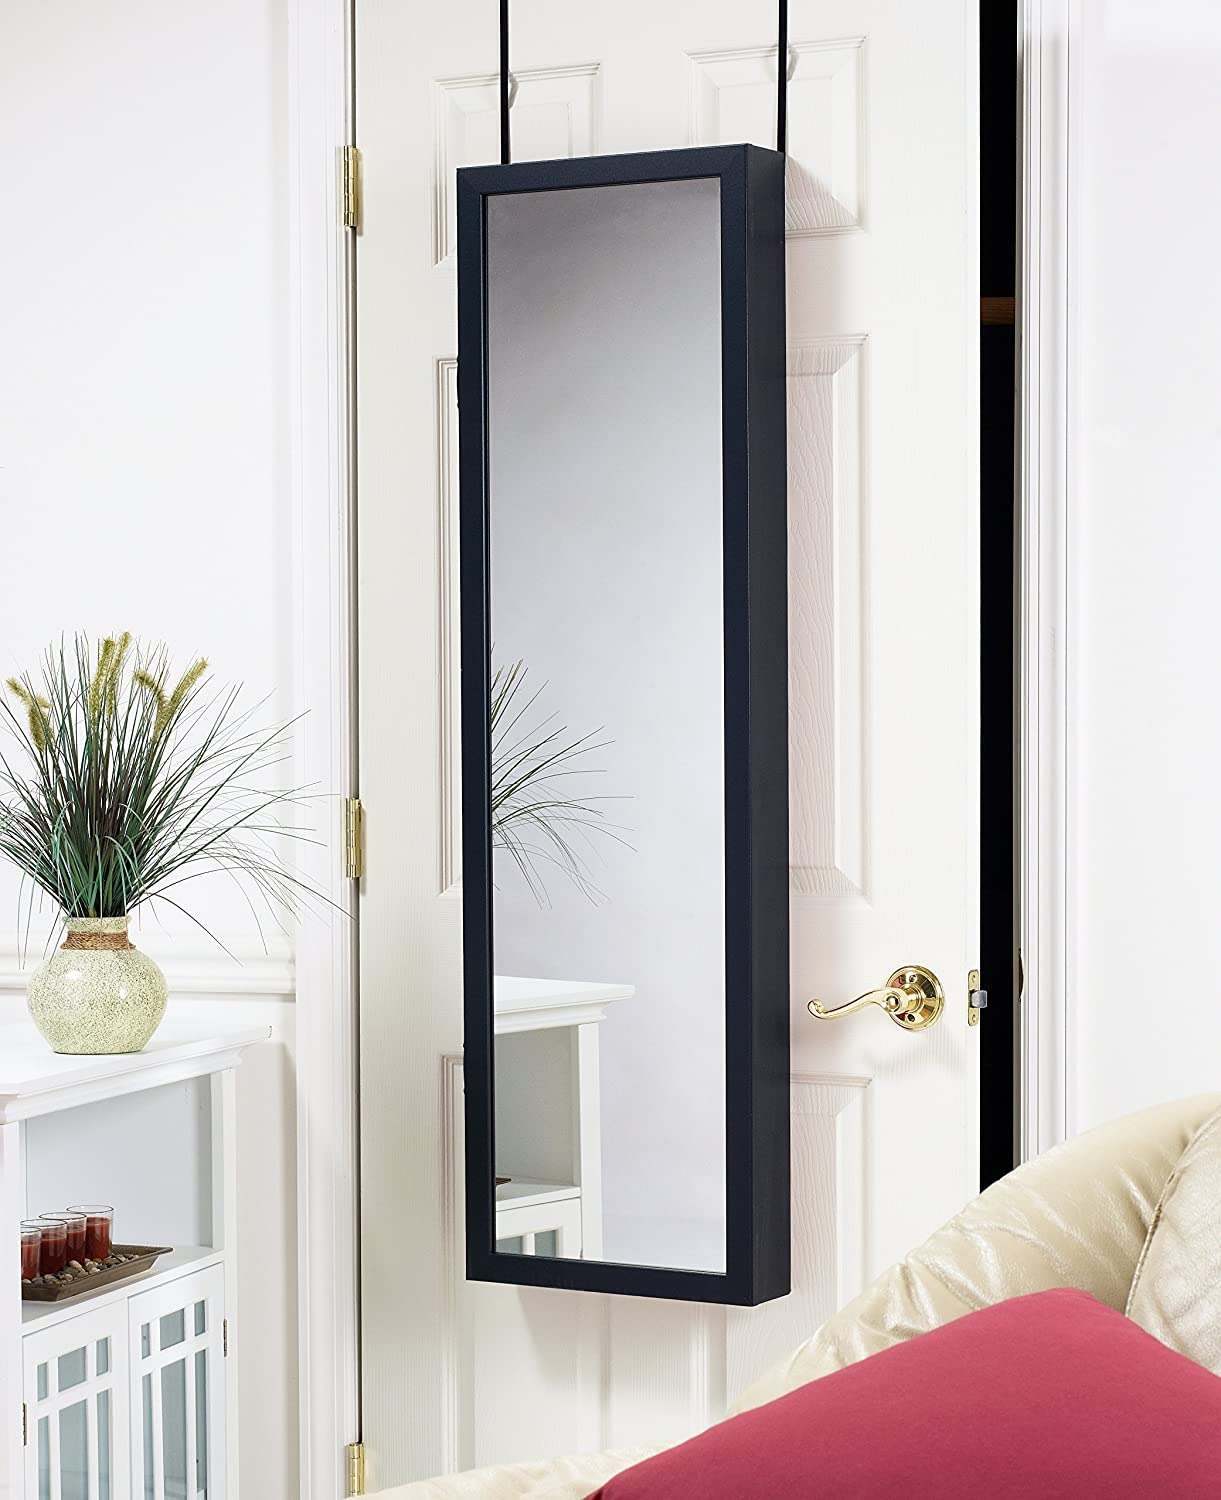 Attractive Amazon.com: Plaza Astoria Wall/Door Mount Jewelry Armoire, Black: Home U0026  Kitchen